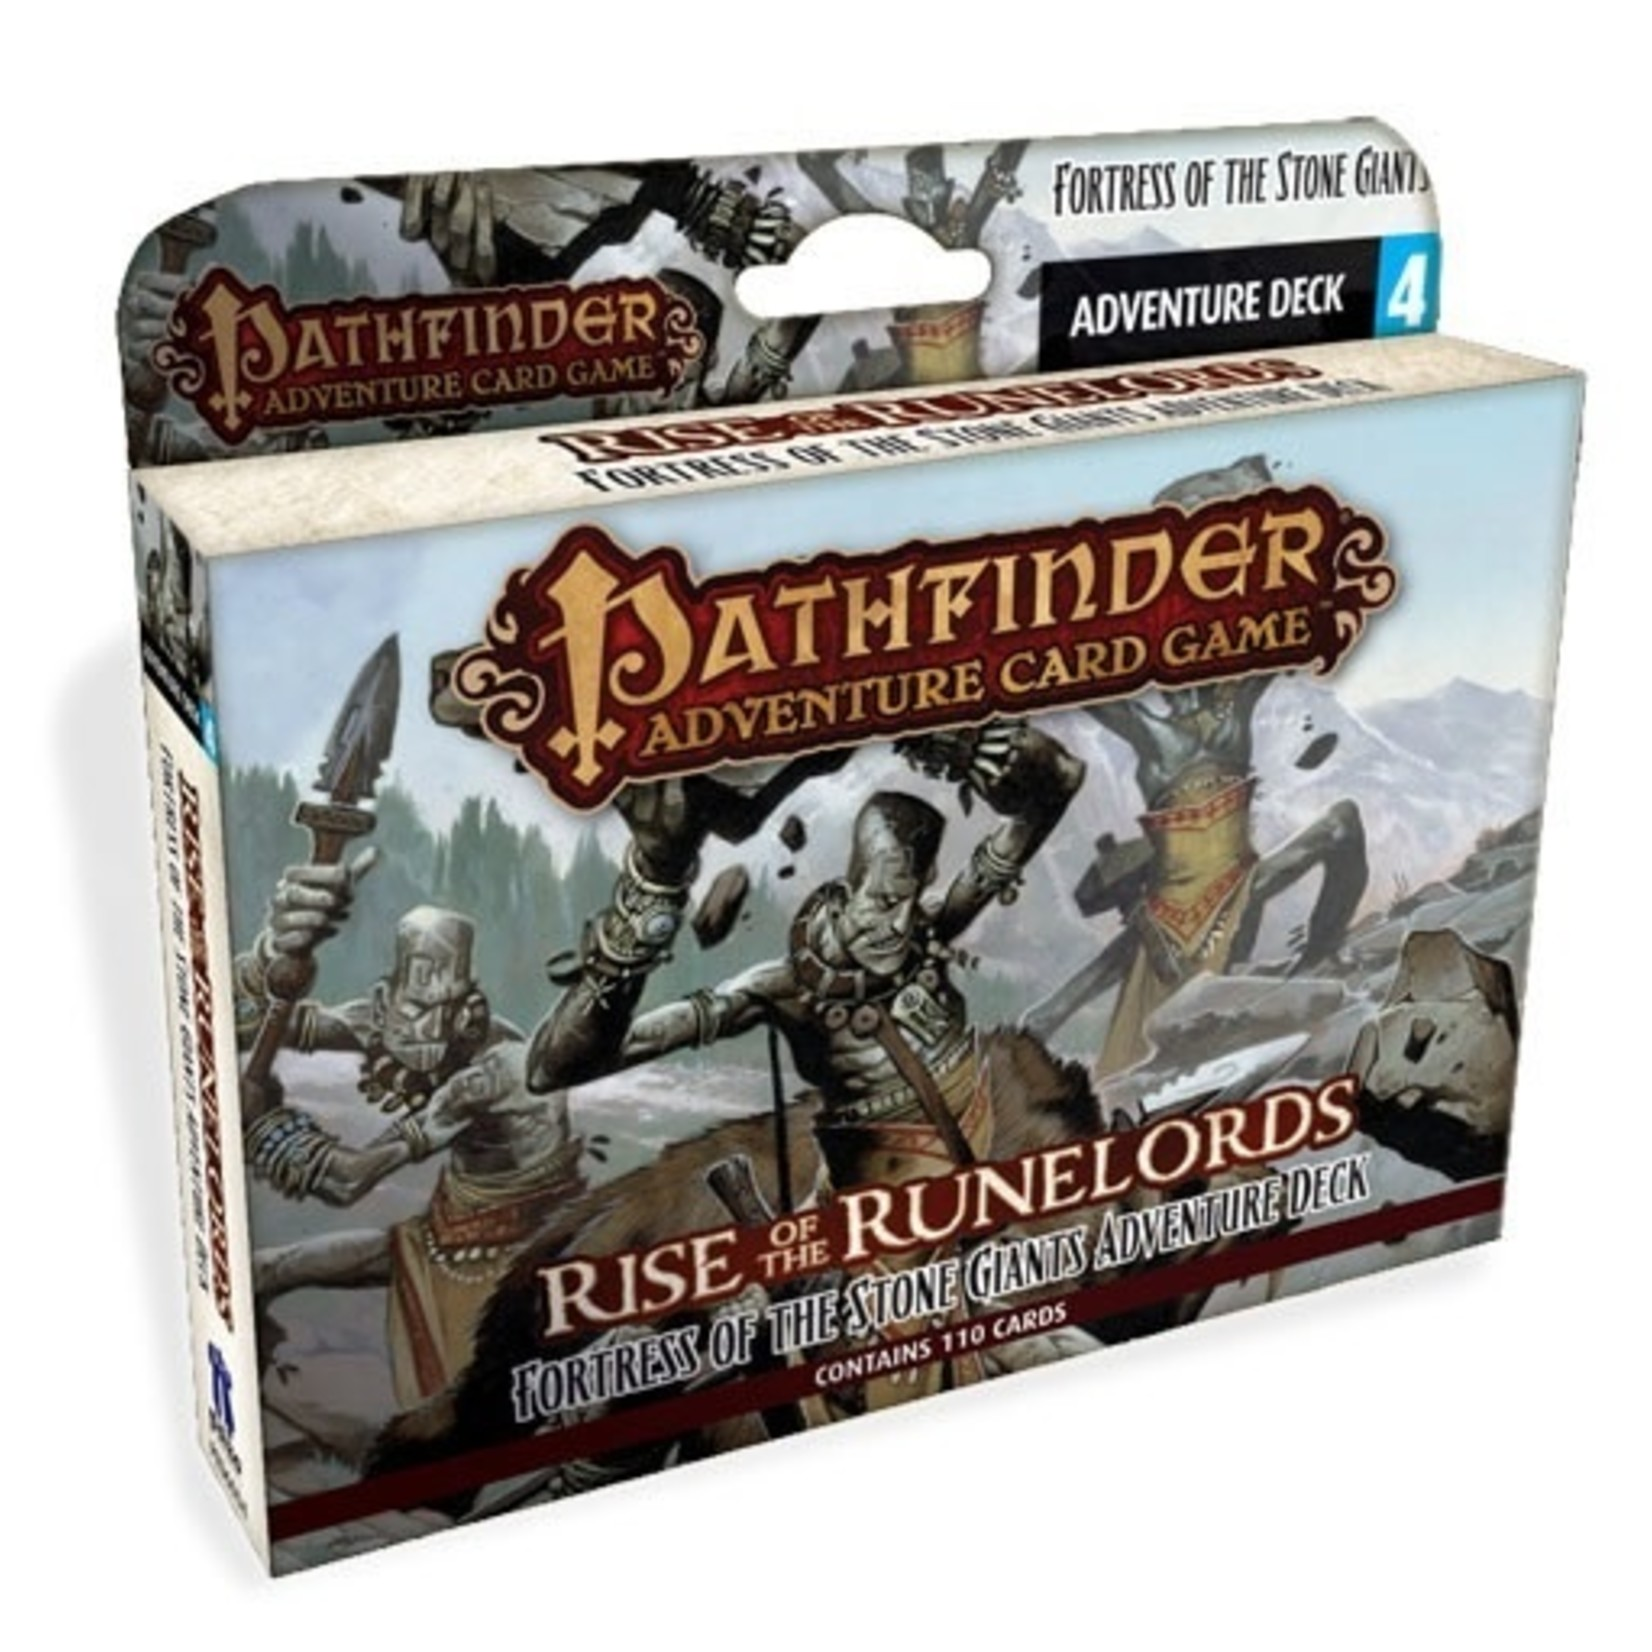 Pathfinder Adventure Card Game Fortress of the Stone Giants Adventure Deck